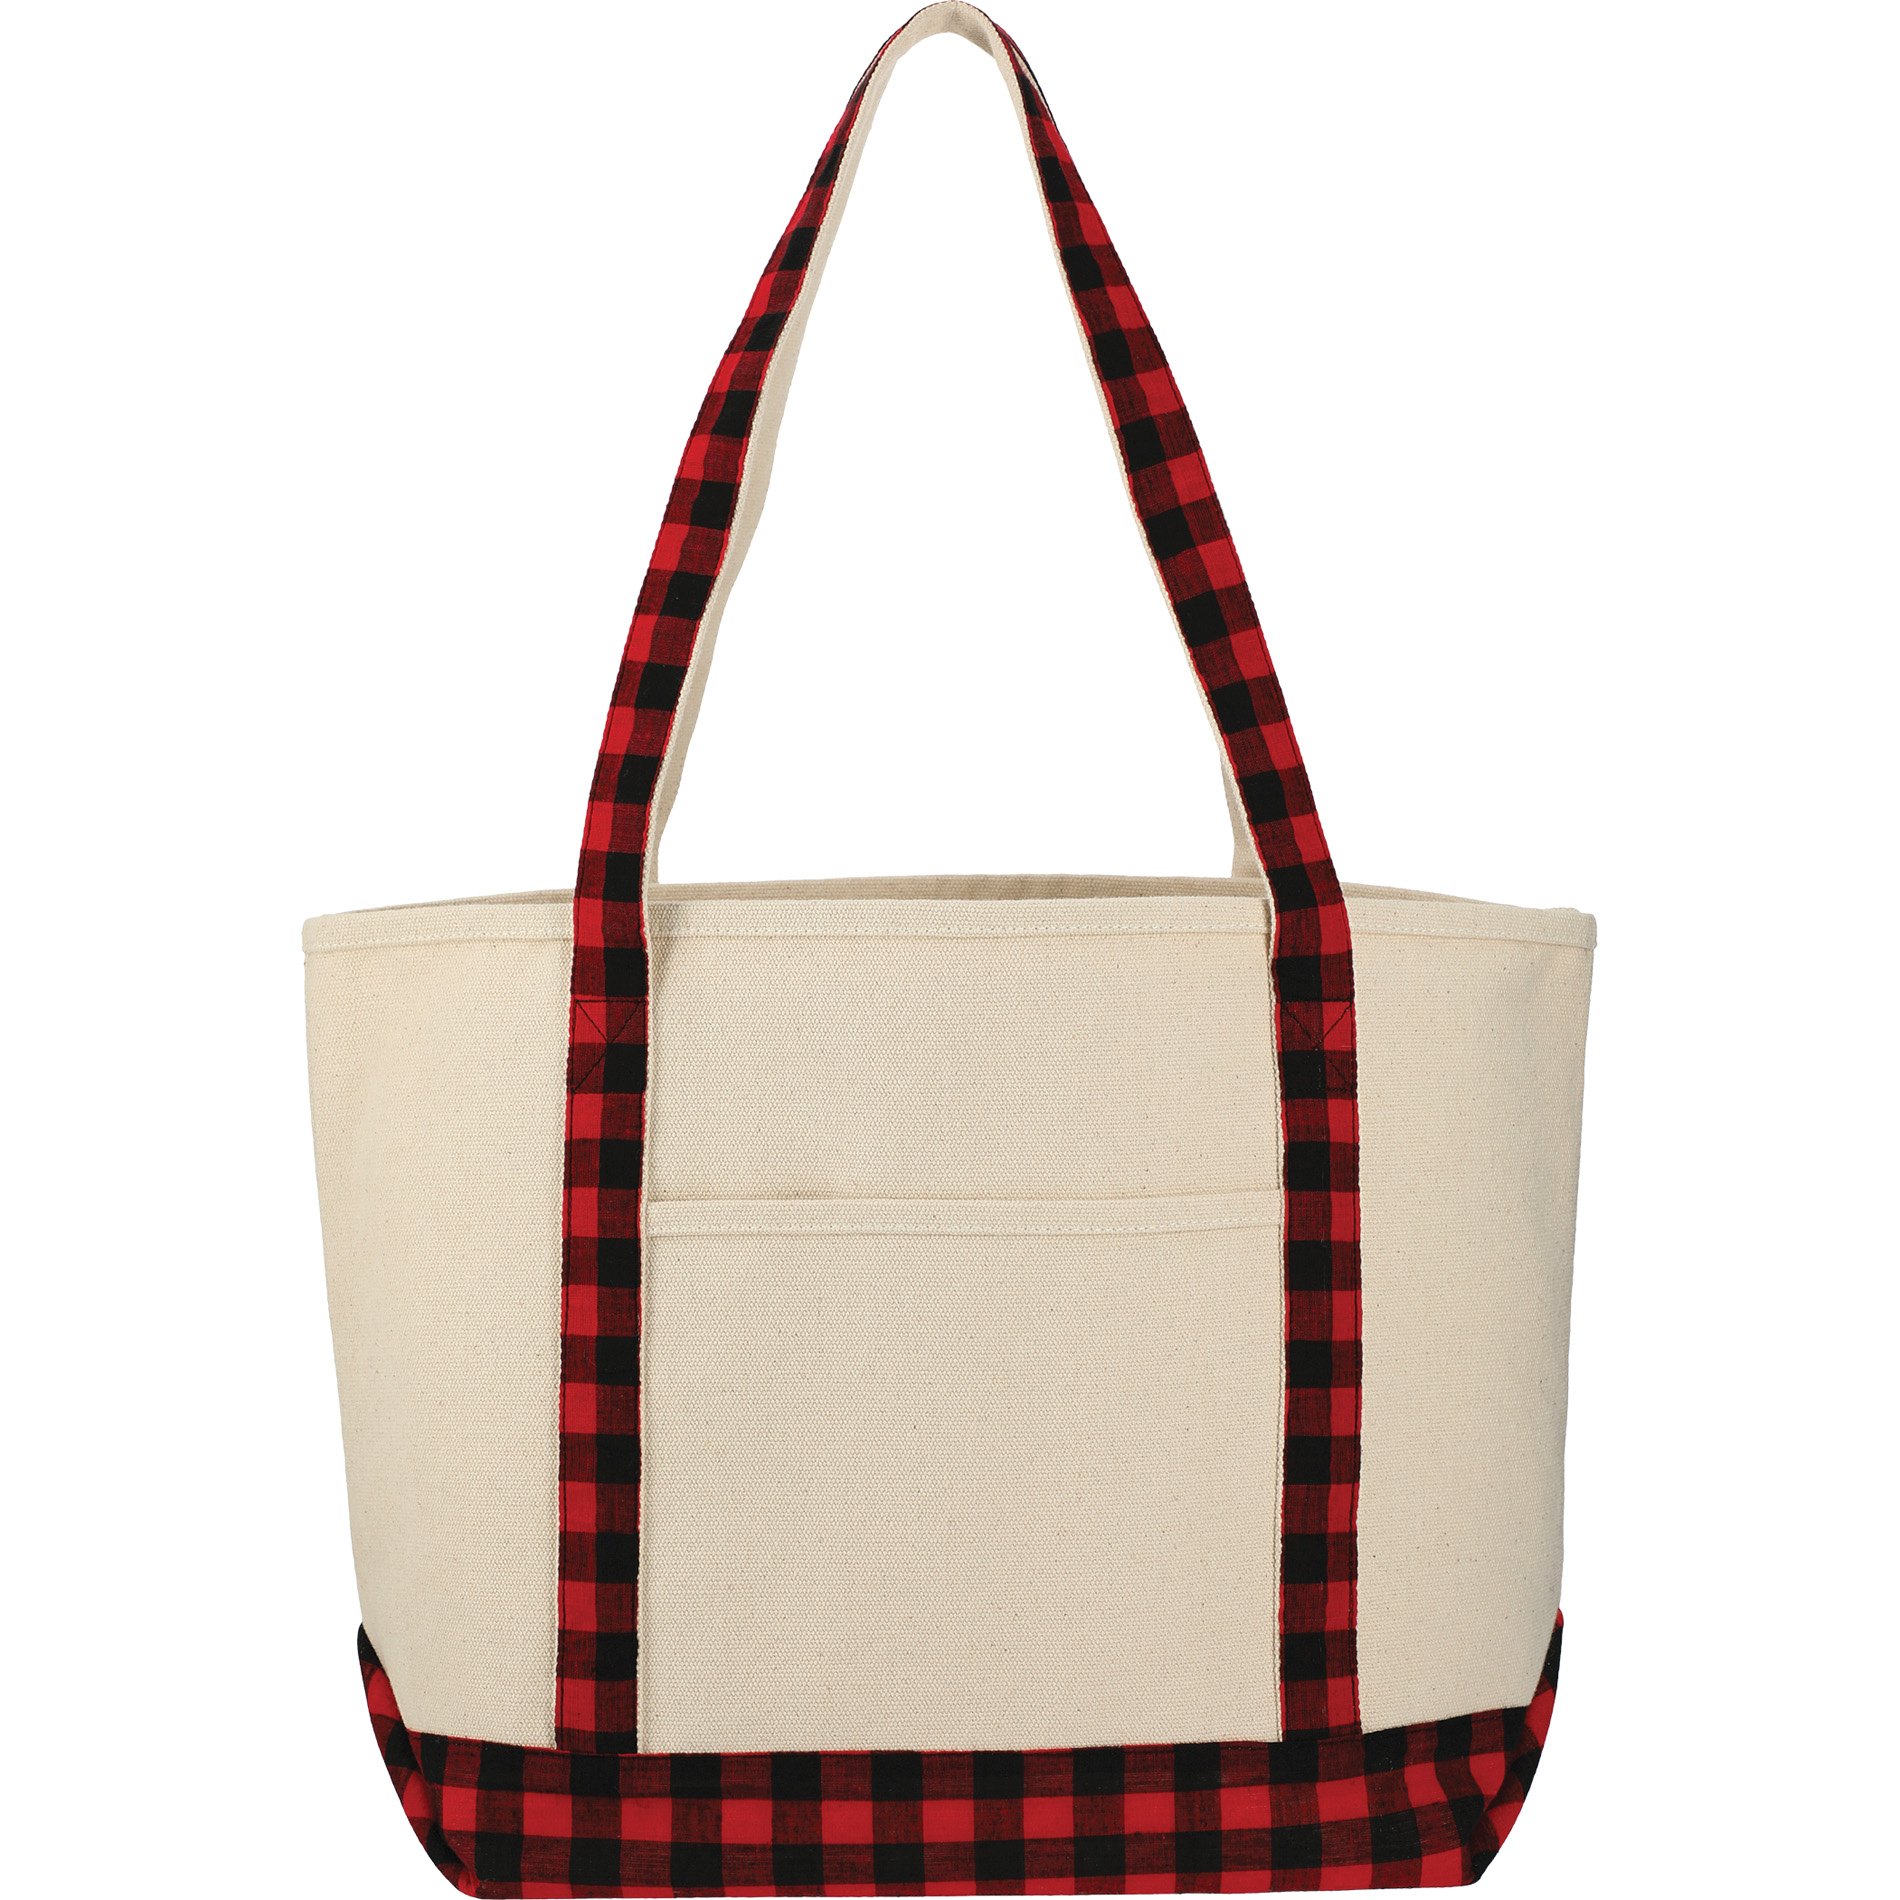 LEEDS 2160-27 - Buffalo Plaid Cotton Boat Tote